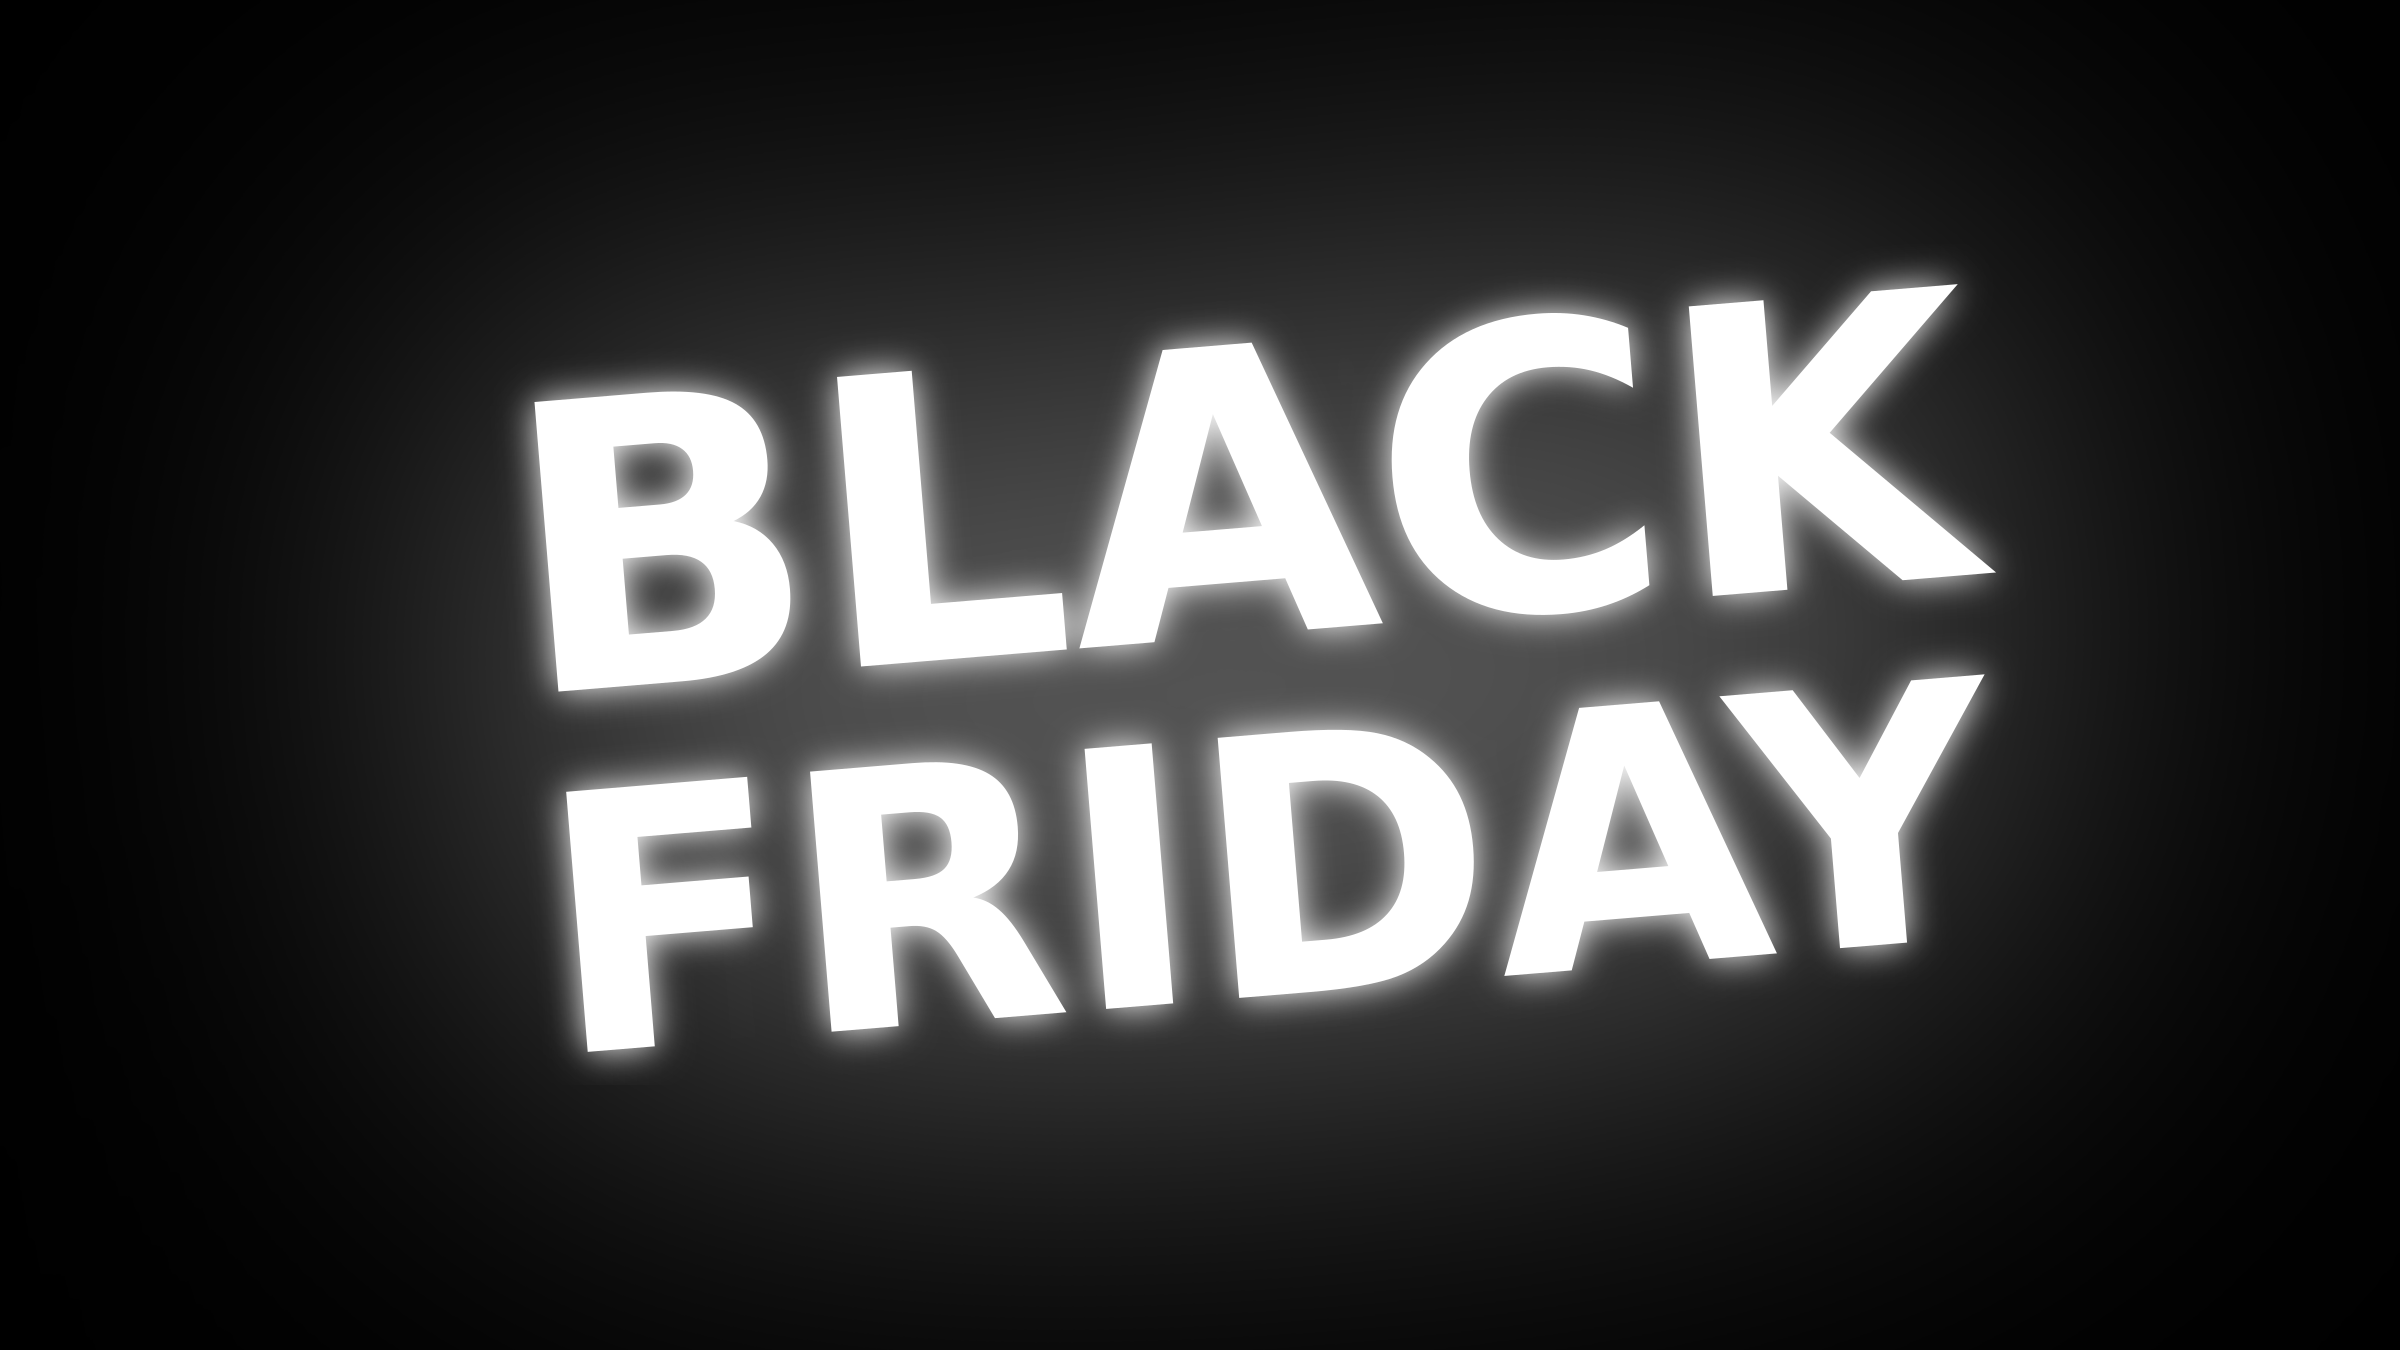 Black Friday Text with White Glow 16:9 by Maiconfz